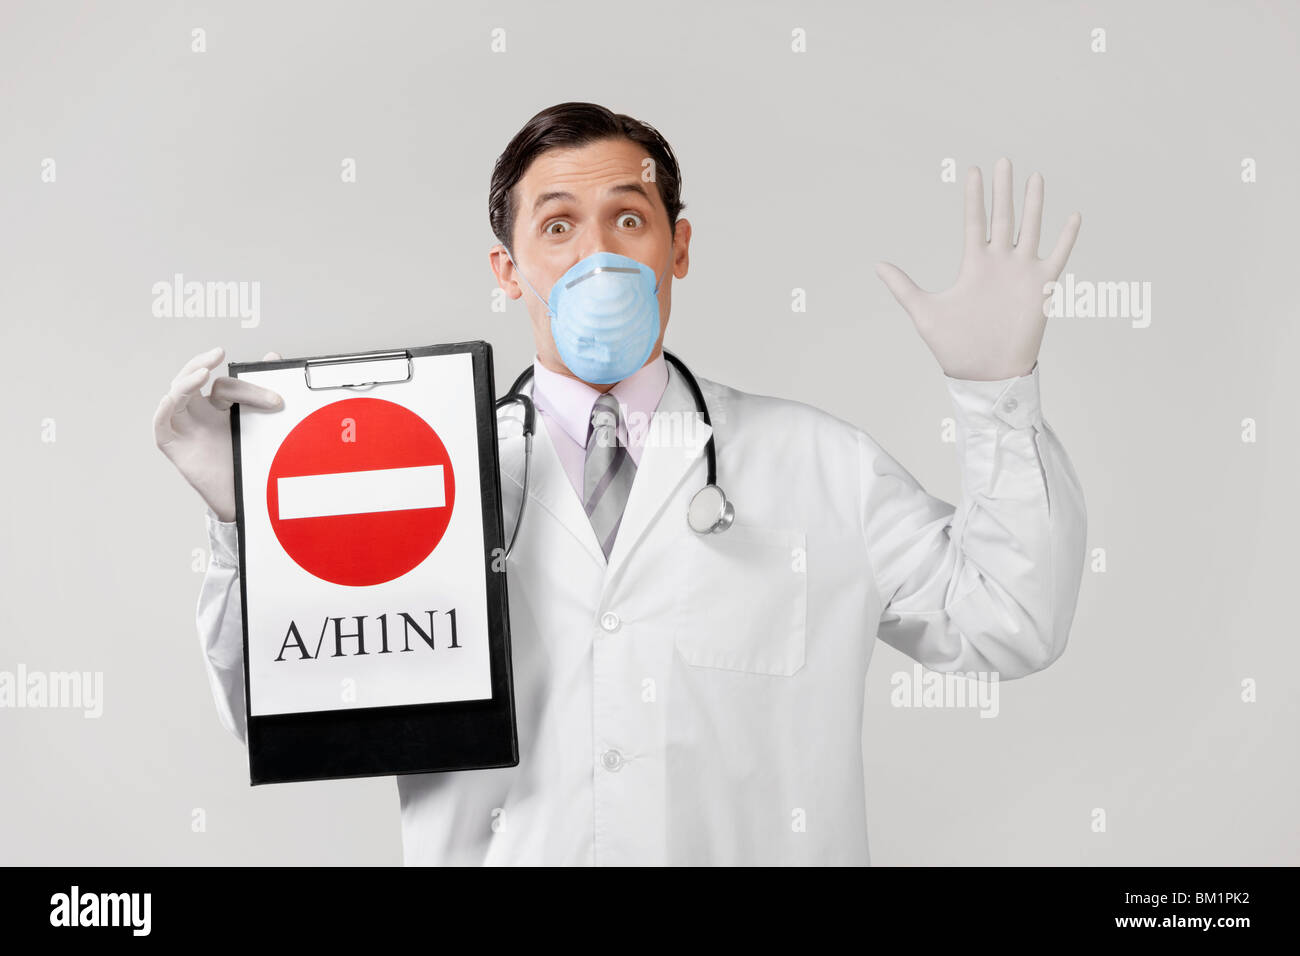 Doctor wearing a flu mask and showing Do Not Enter sign - Stock Image